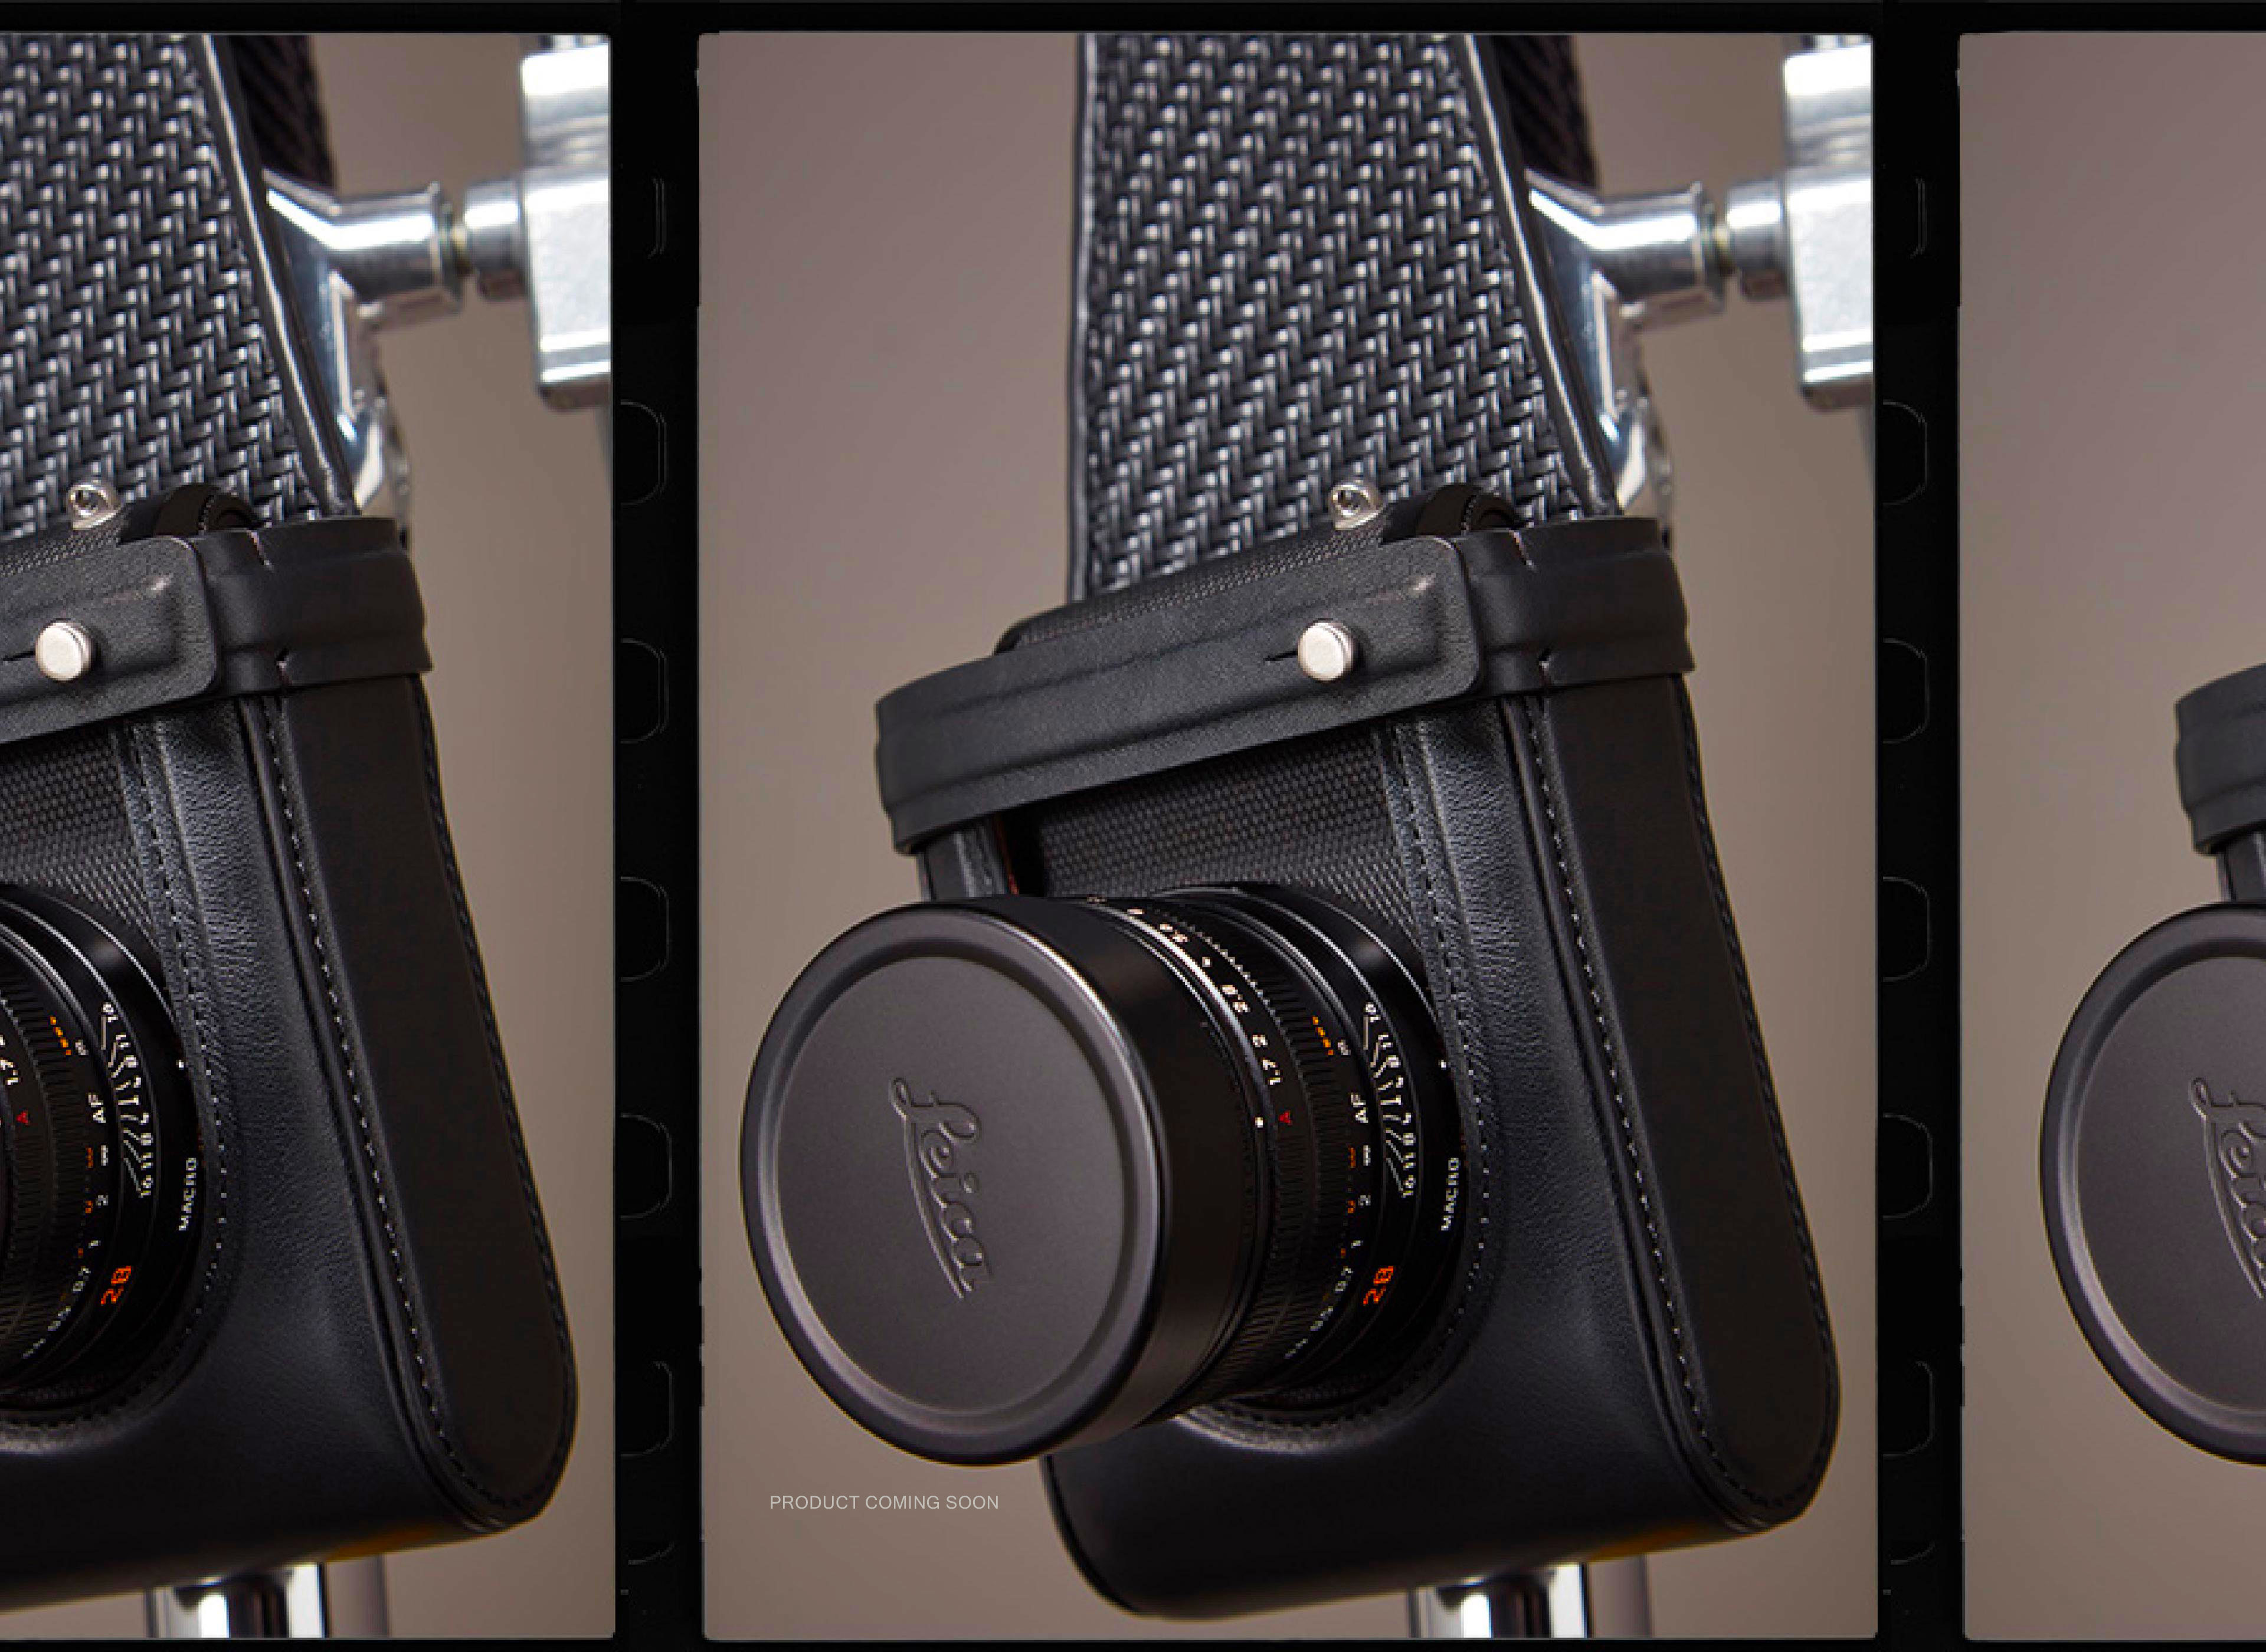 Details of camera bags | Leica x Zegna